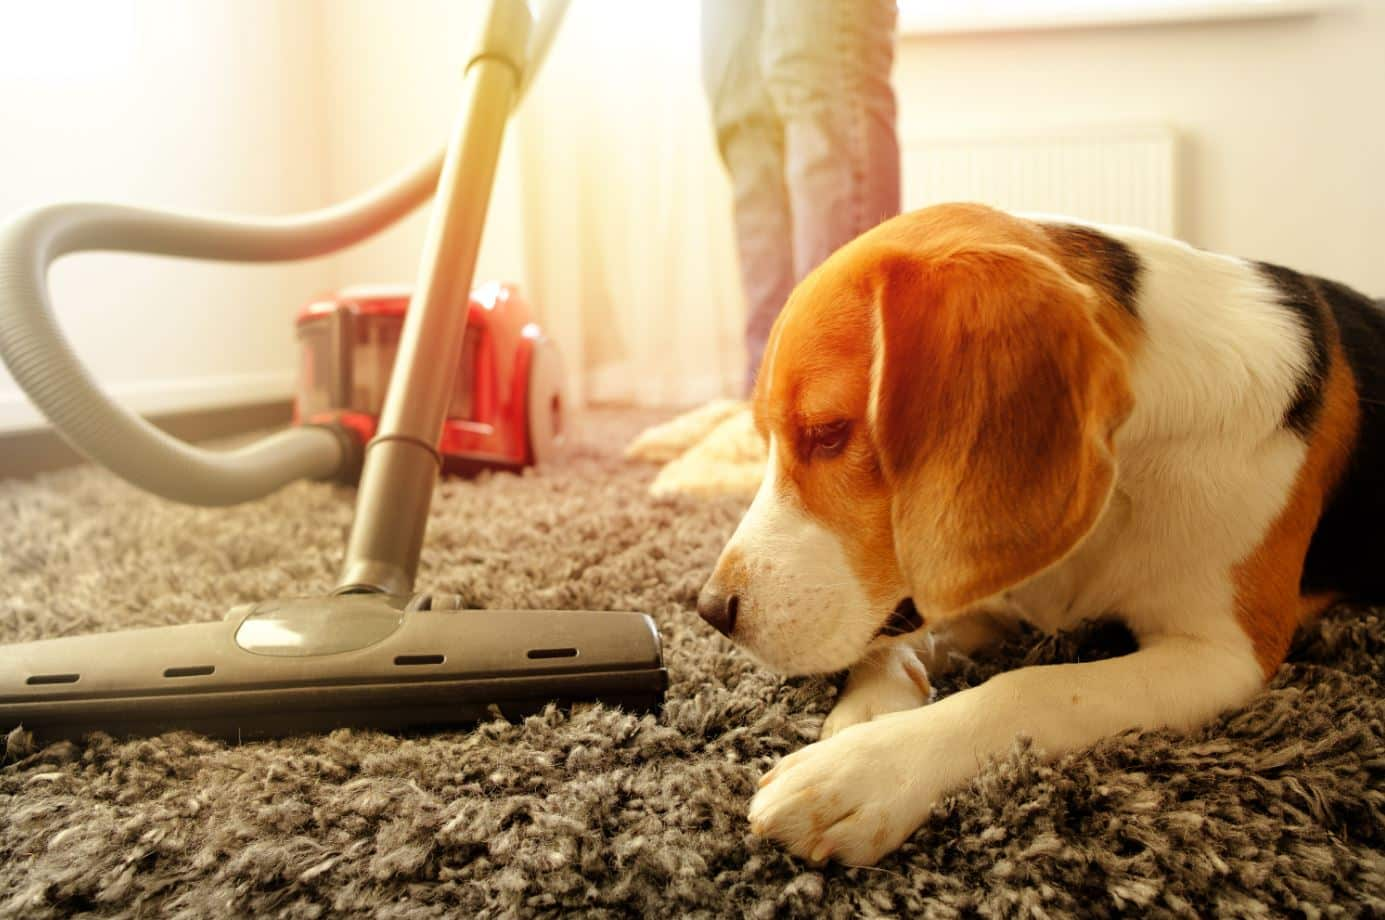 beagle dog sitting on a grey carpet next to a red vacuum cleaner